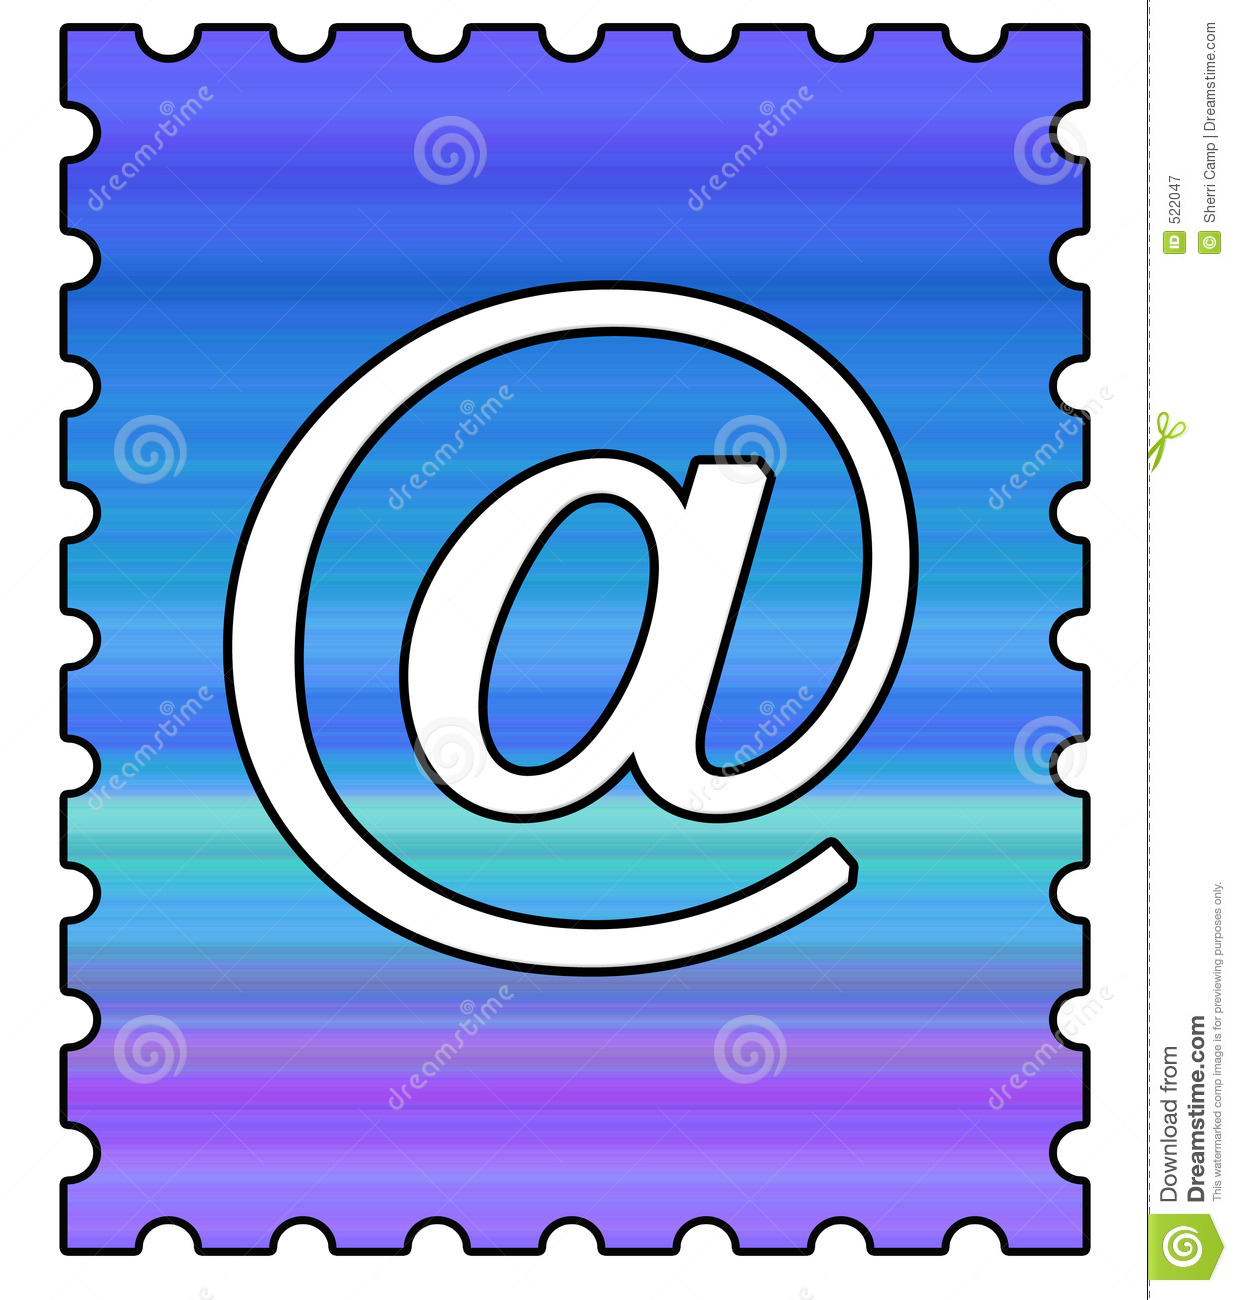 Email Postage Stamp Royalty Free Stock Photography - Image: 522047